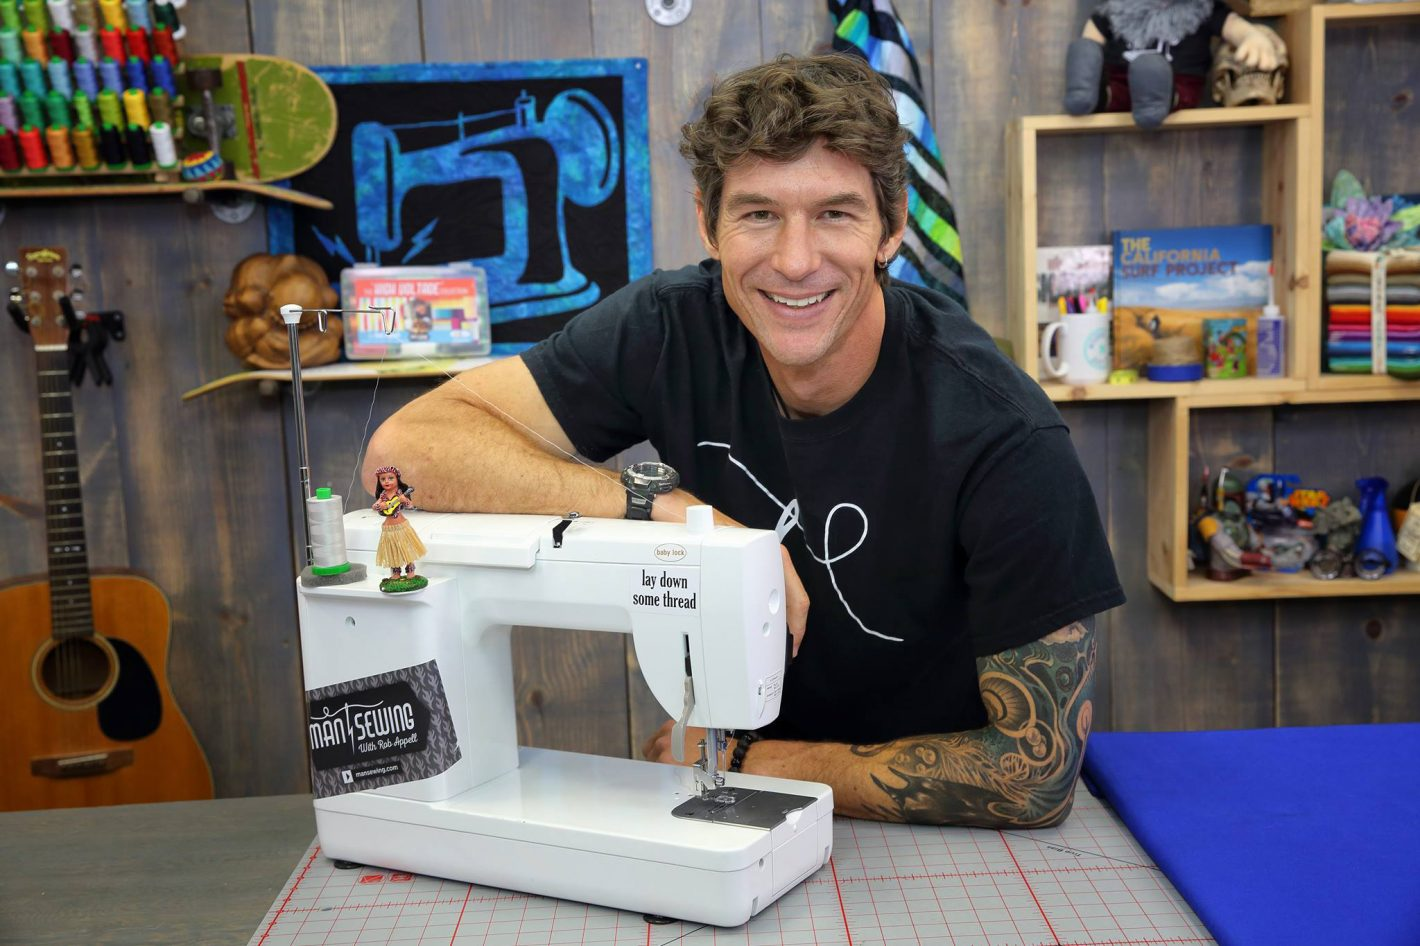 rob q appell headshot man quilting sewing quilt meet a